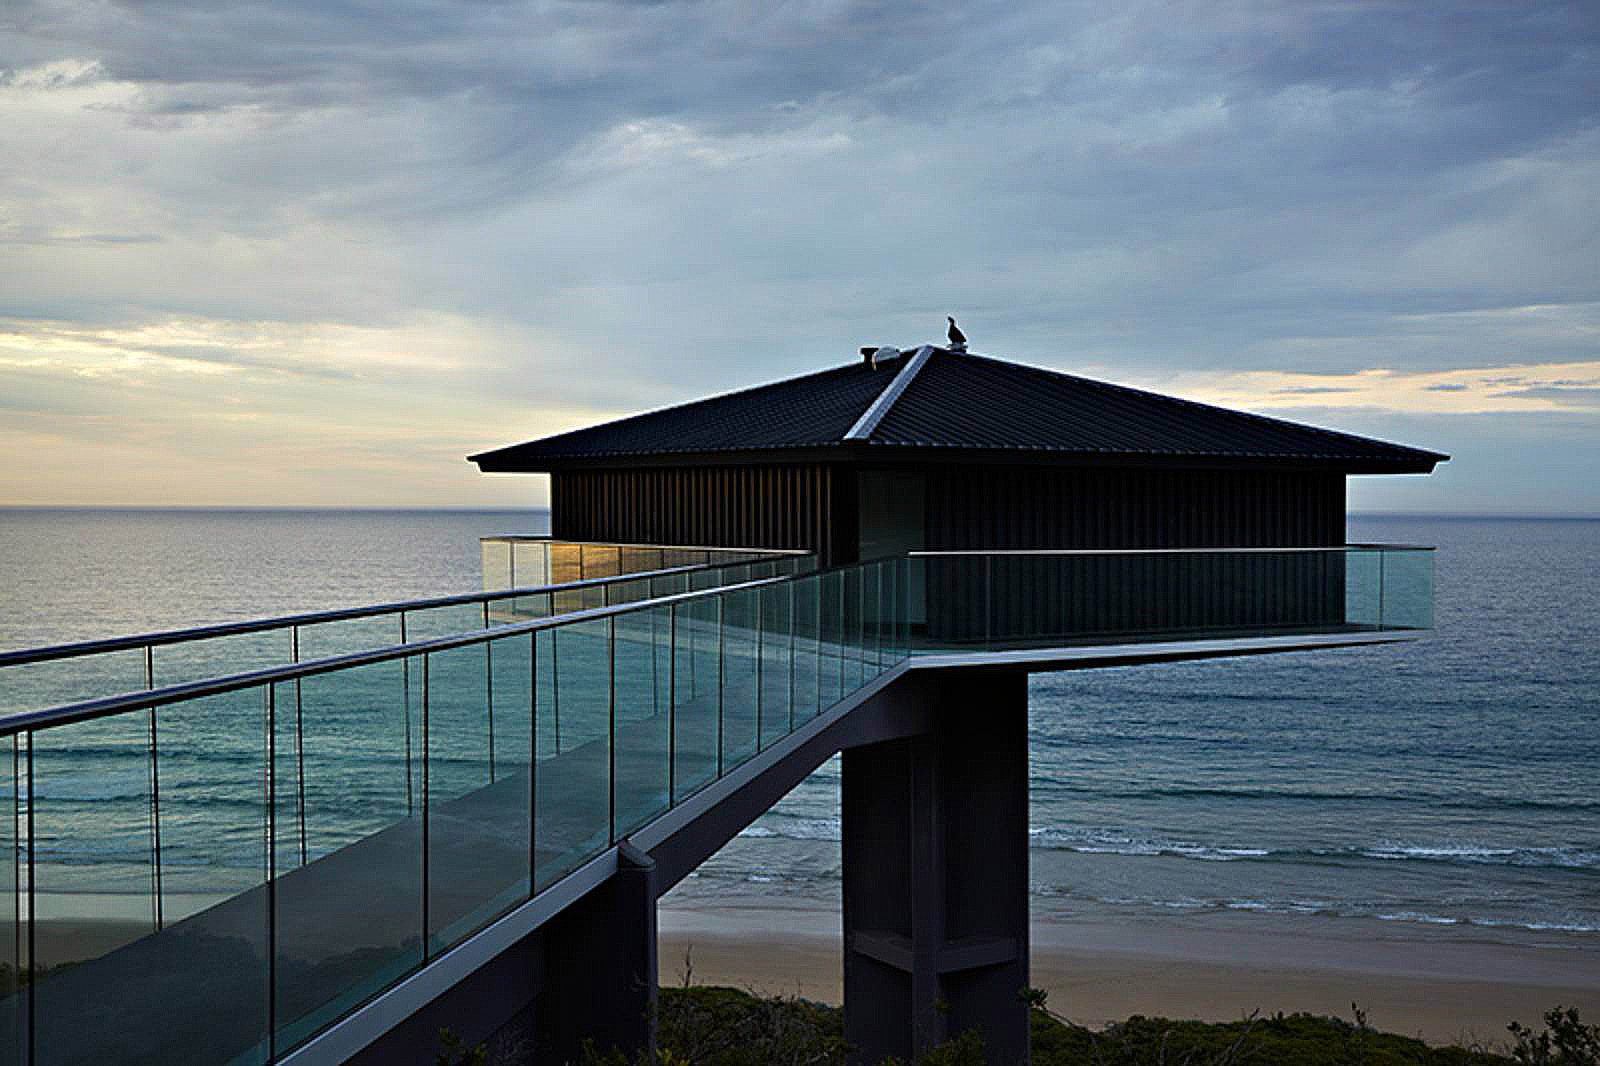 F2 architecture s pole house puts breathtaking views front F2 architecture